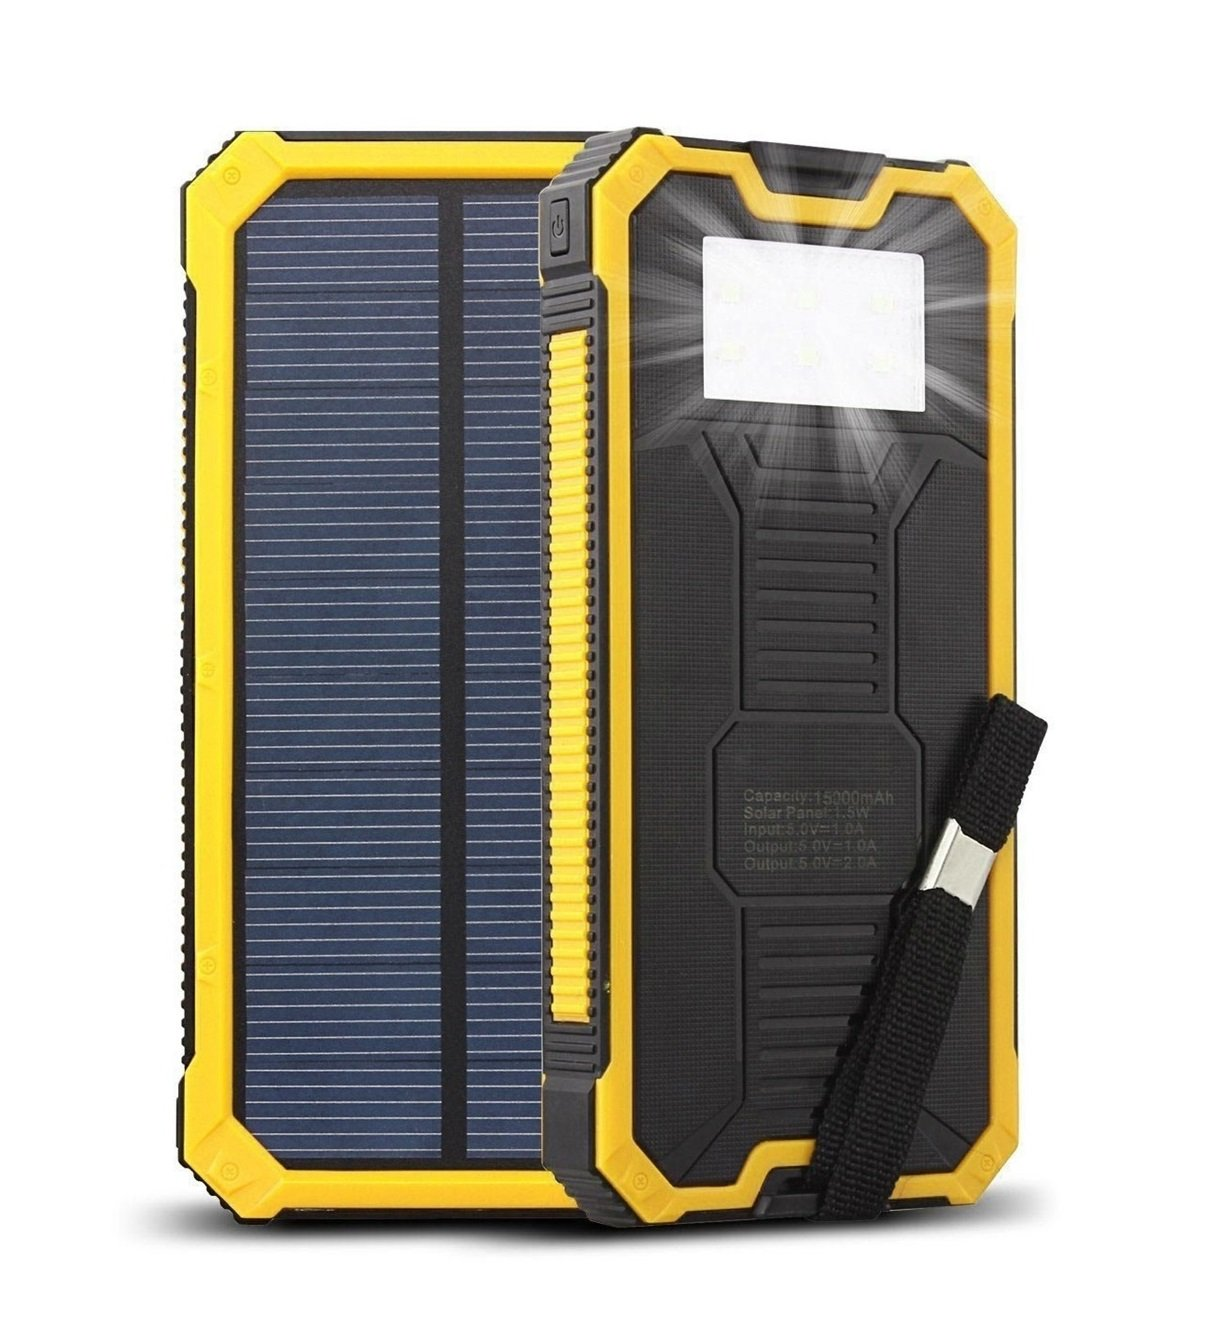 Solar Charger, IYUT 15000mAh Dual USB Port External Phone Battery Pack Solar Power Bank Charger Waterproof with LED Emergency Light for iPhone, iPad, Samsung, Laptops, Father Day 's gift (Yellow)